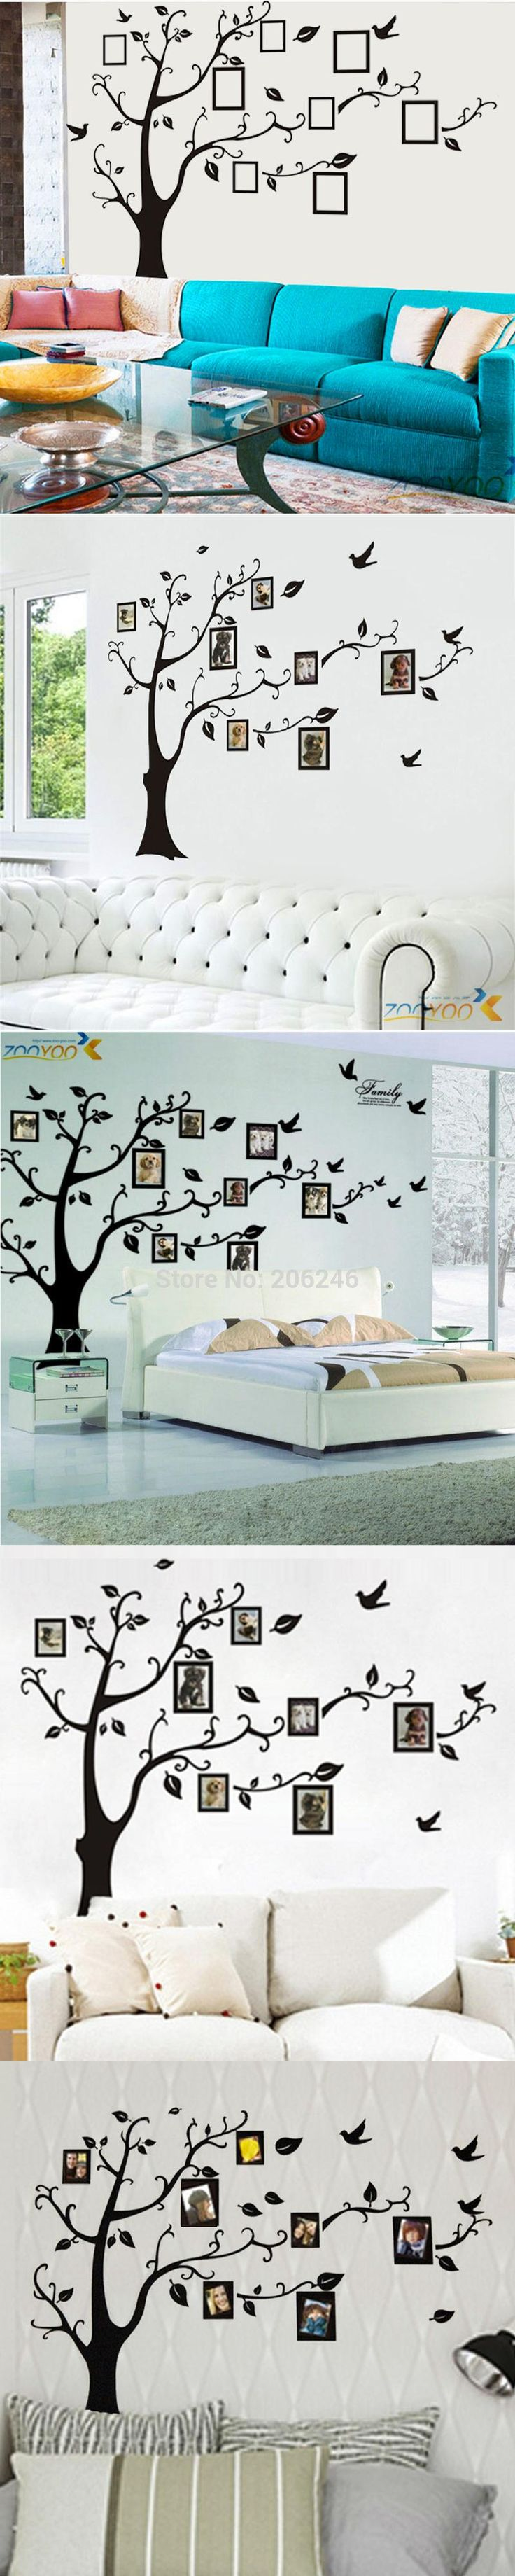 Best 25 family tree wall sticker ideas on pinterest wall 3designs smallmediumlarge photo frame family tree wall stickers arts zooyoo94ab home decorations amipublicfo Gallery